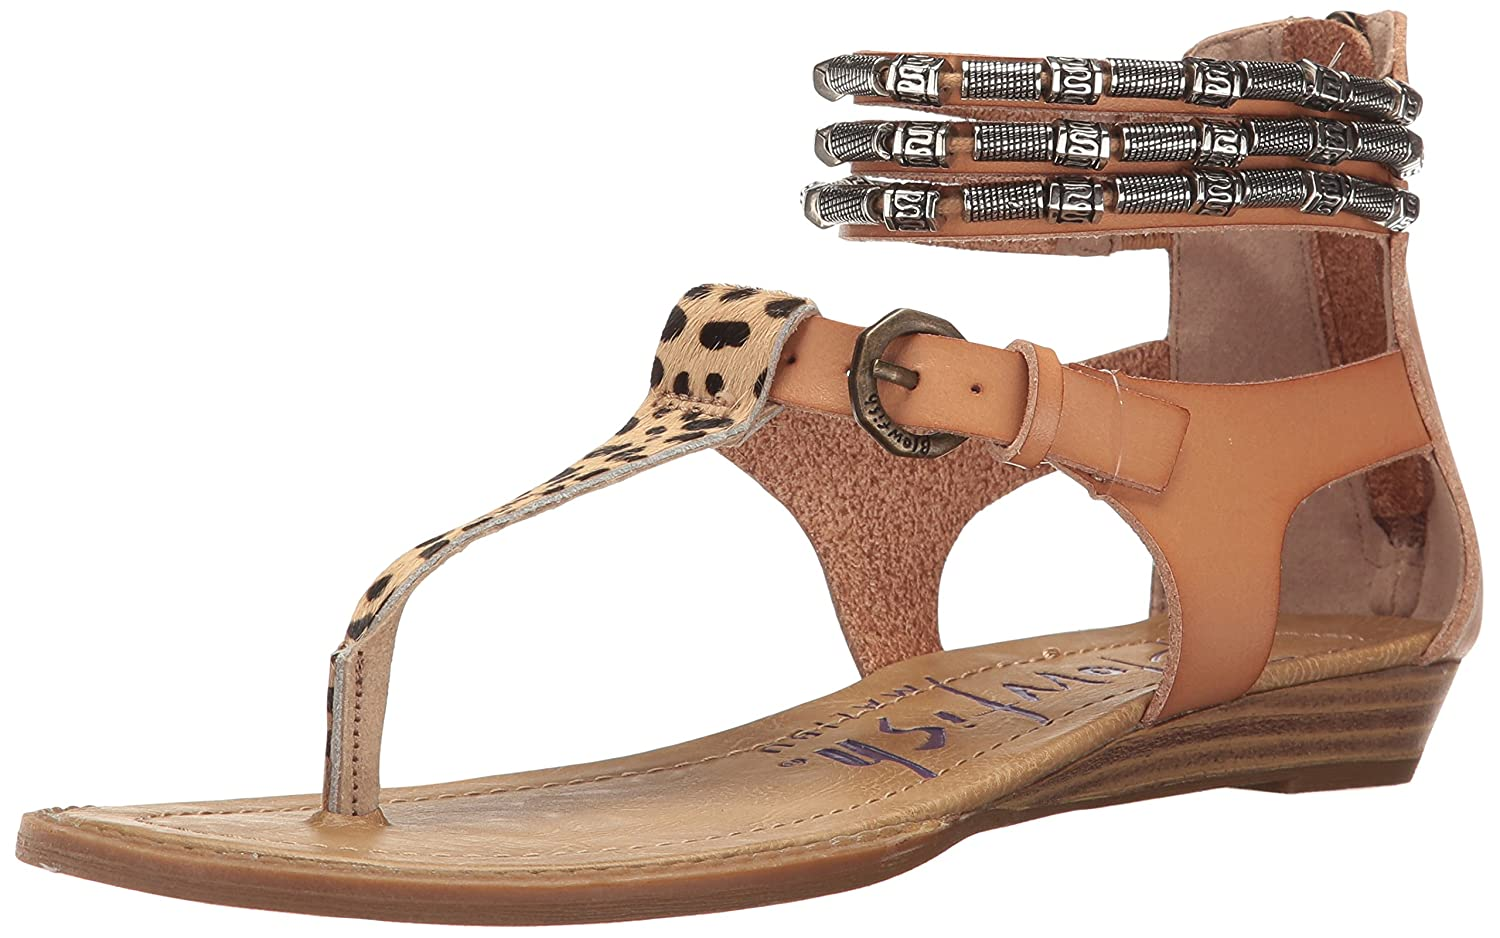 ba6fd7fd34d6 Blowfish Women s Bombshell Wedge Sandal  Amazon.co.uk  Shoes   Bags